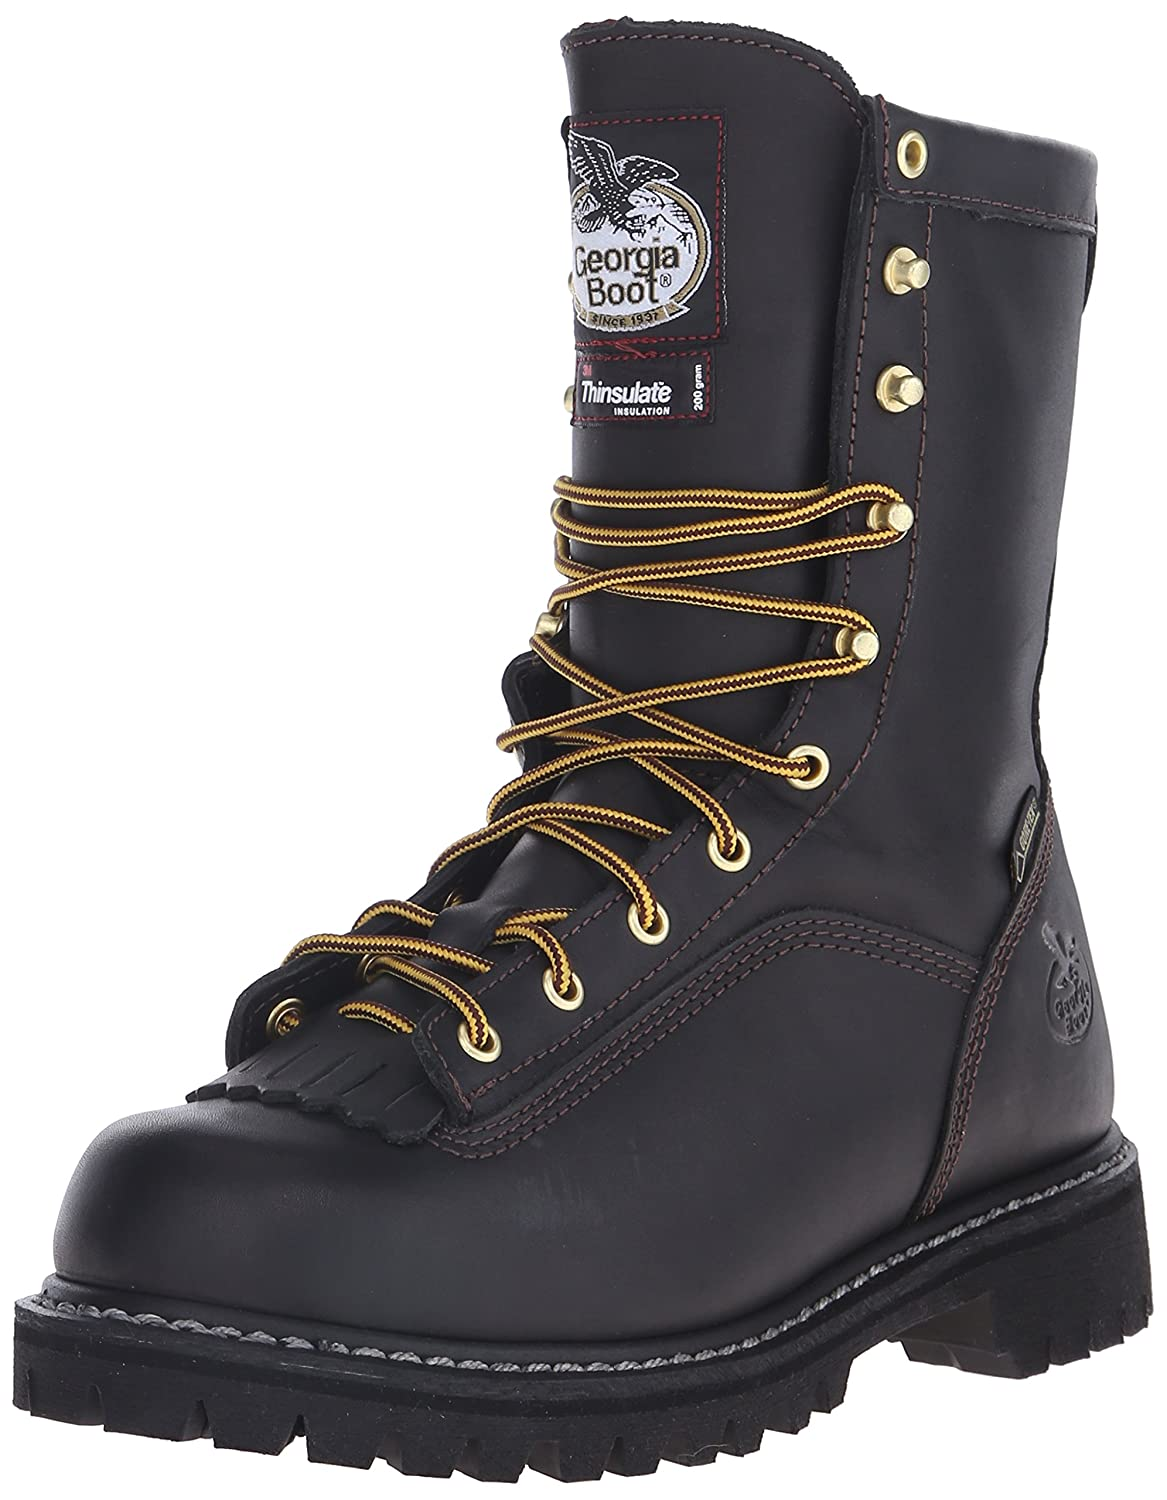 9a144907930 Georgia Boot Lace-To-Toe Gore-Tex Waterproof Insulated Work Boot